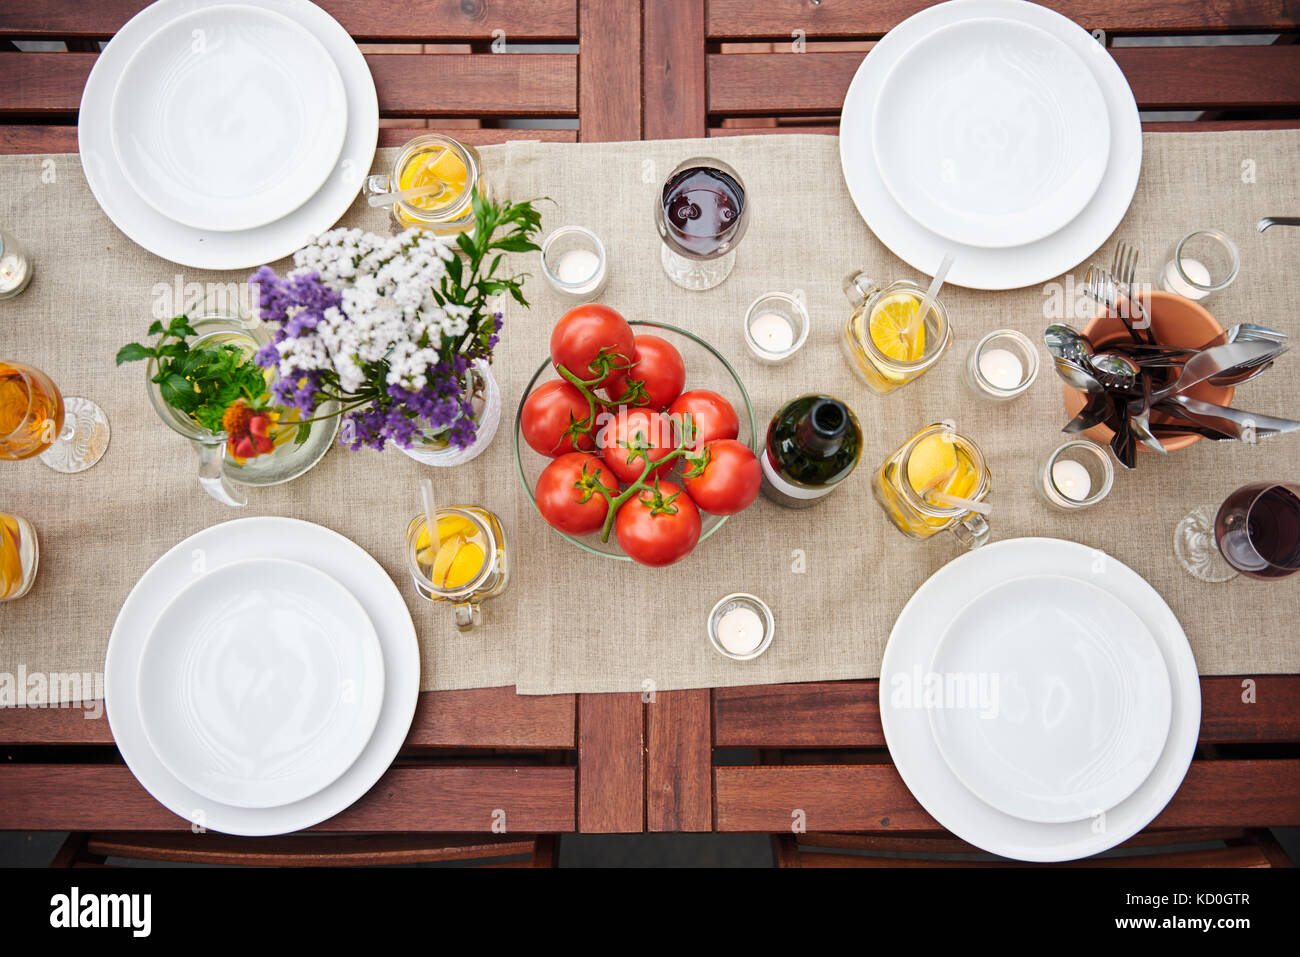 Overhead view of table prepared with flowers and vine tomatoes for lunch on patio - Stock Image